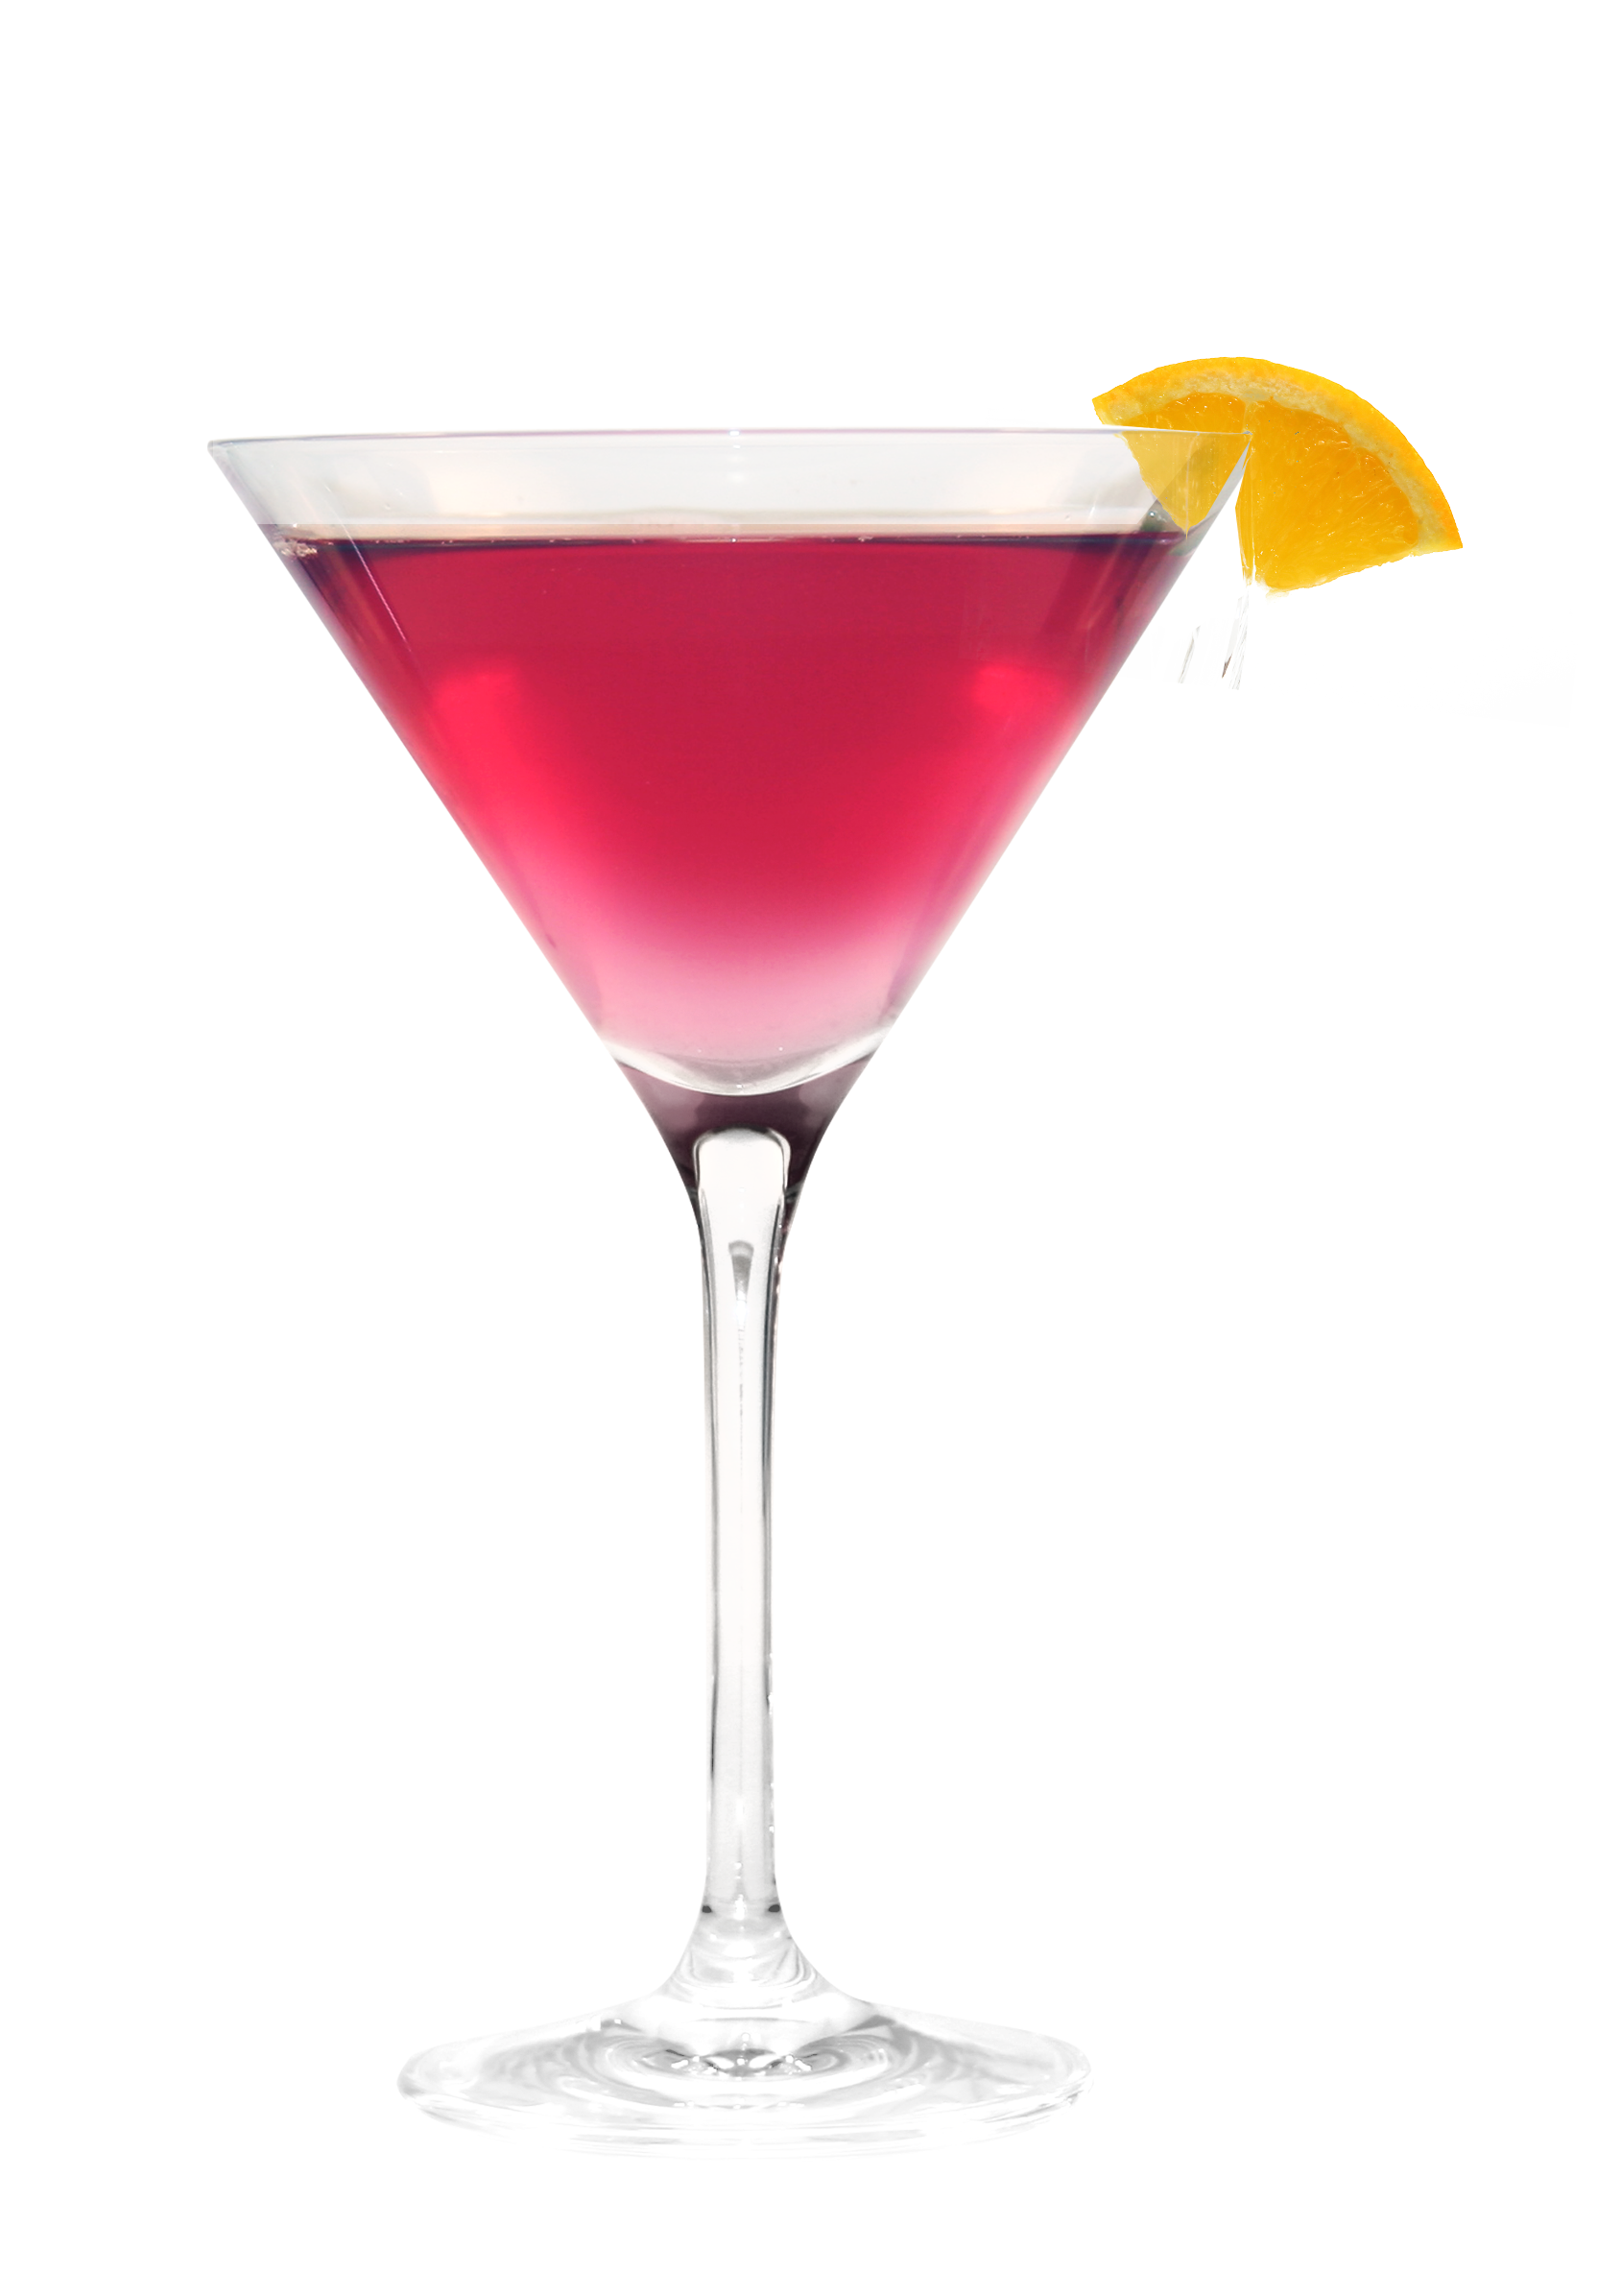 Martini drink png. Cocktail images free download